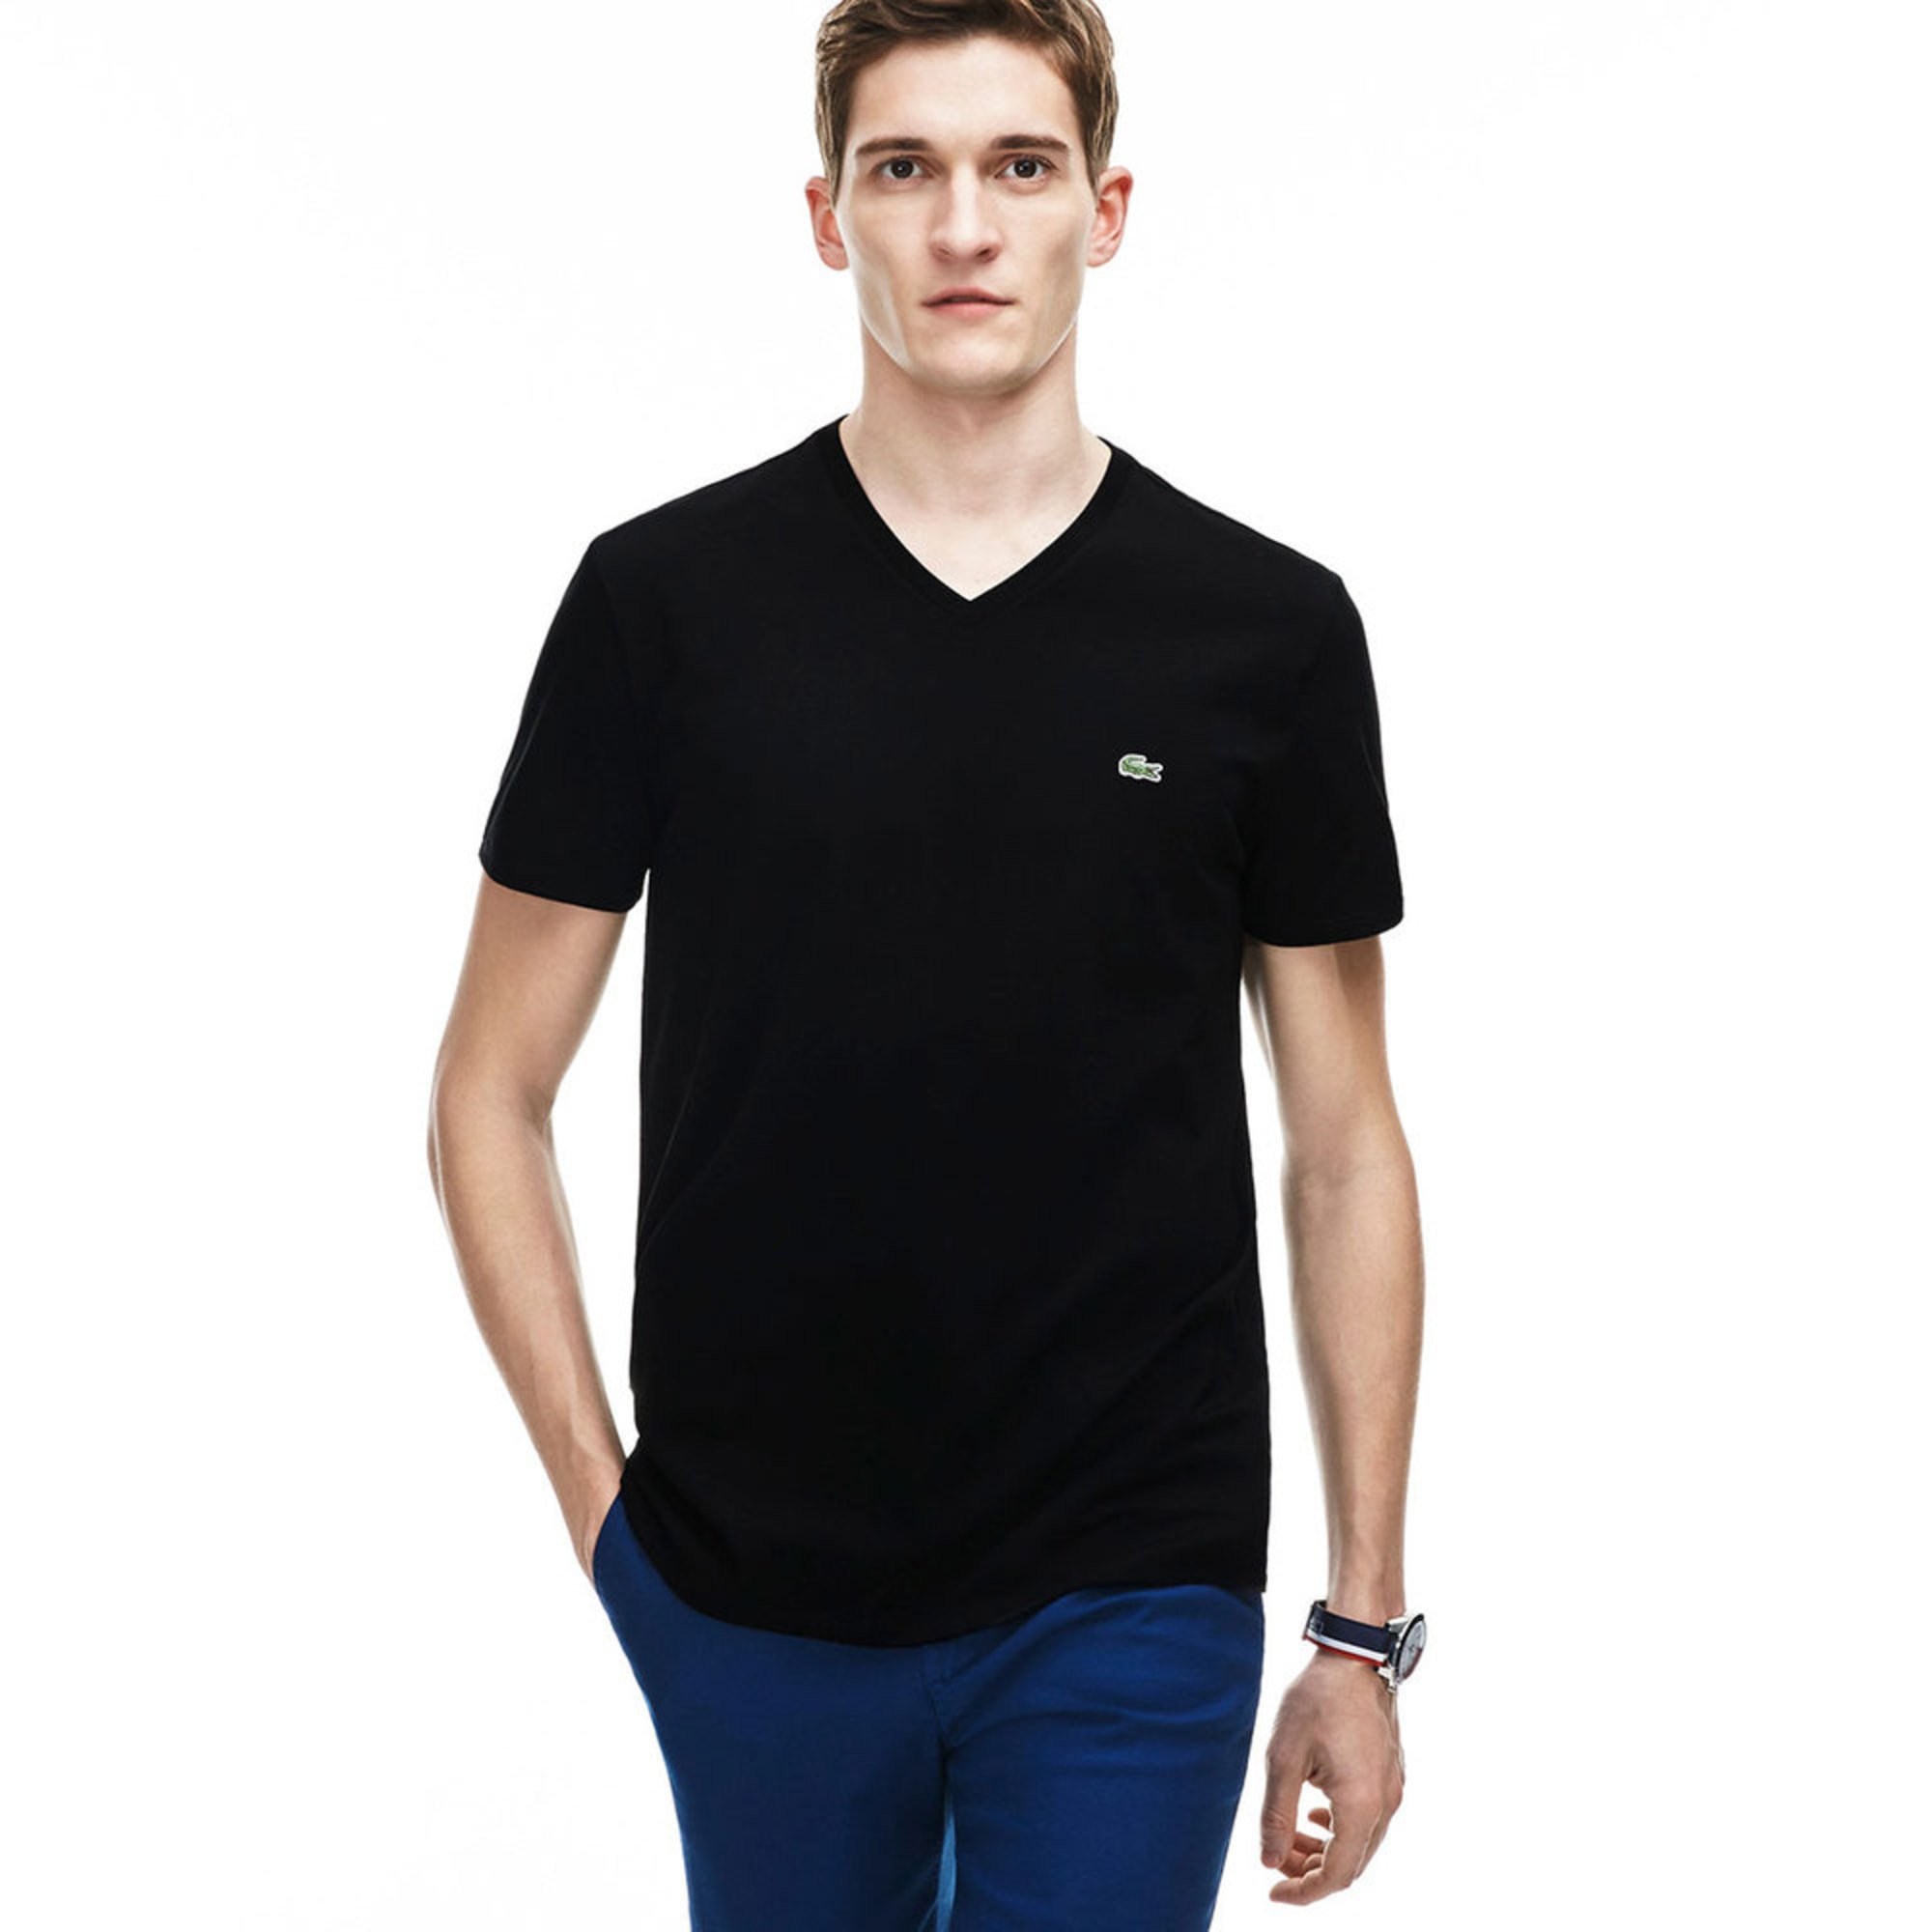 ed43393a Lacoste Men's V-neck Tee | Casual & Dress Tees | Apparel - Shop Your ...